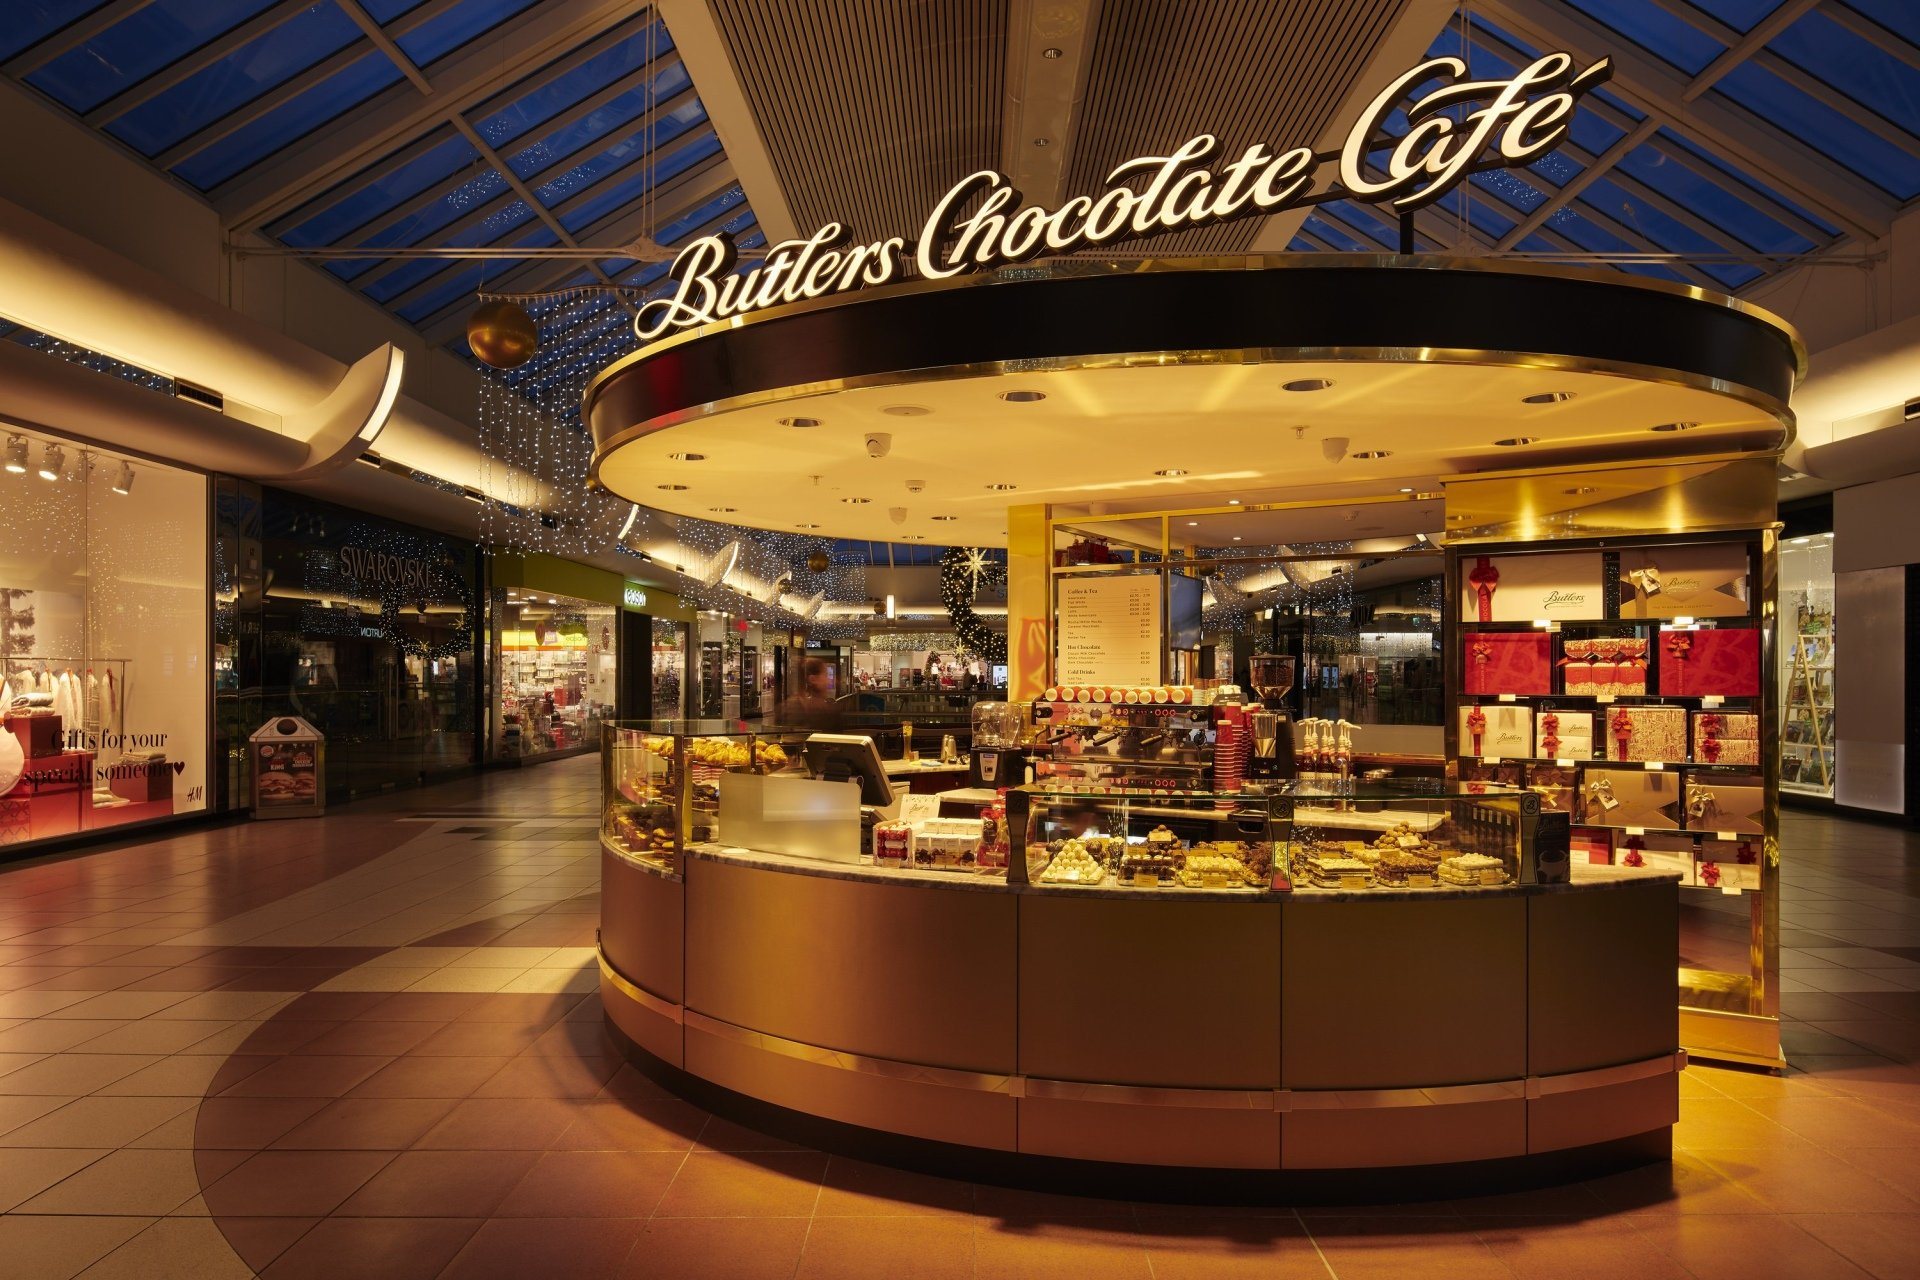 Butlers Chocolates Kiosk @ The Blanchardstown Centre